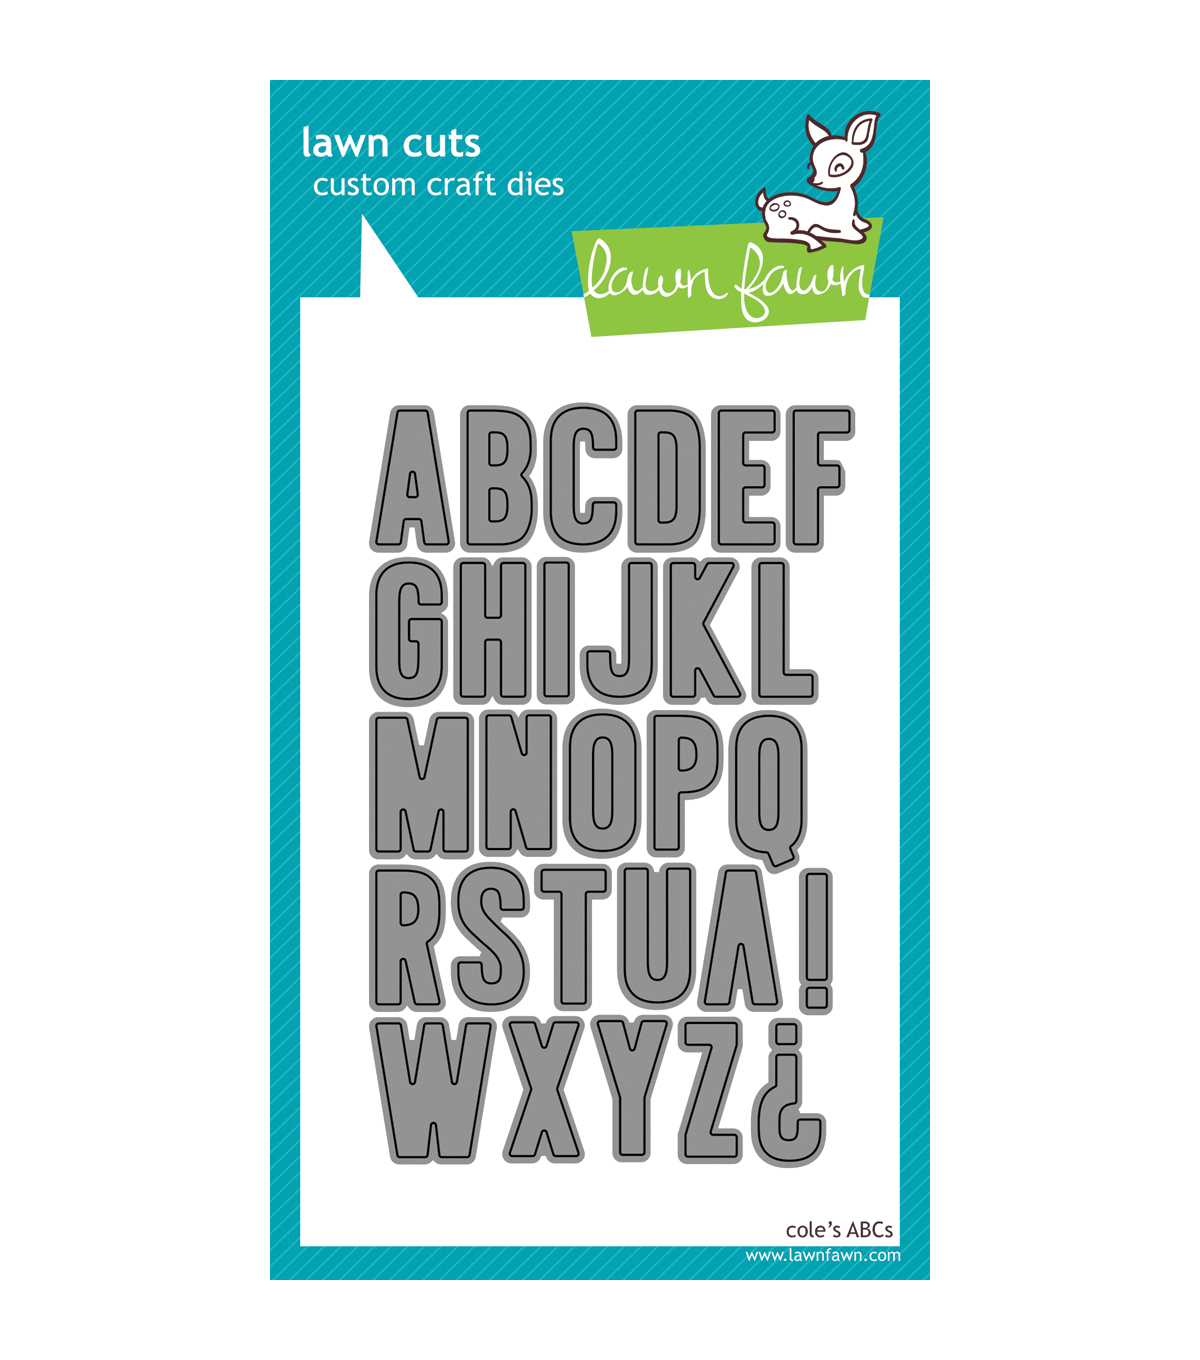 Lawn Fawn Lawn Cuts Custom Craft Die-Cole\u0027s ABCs